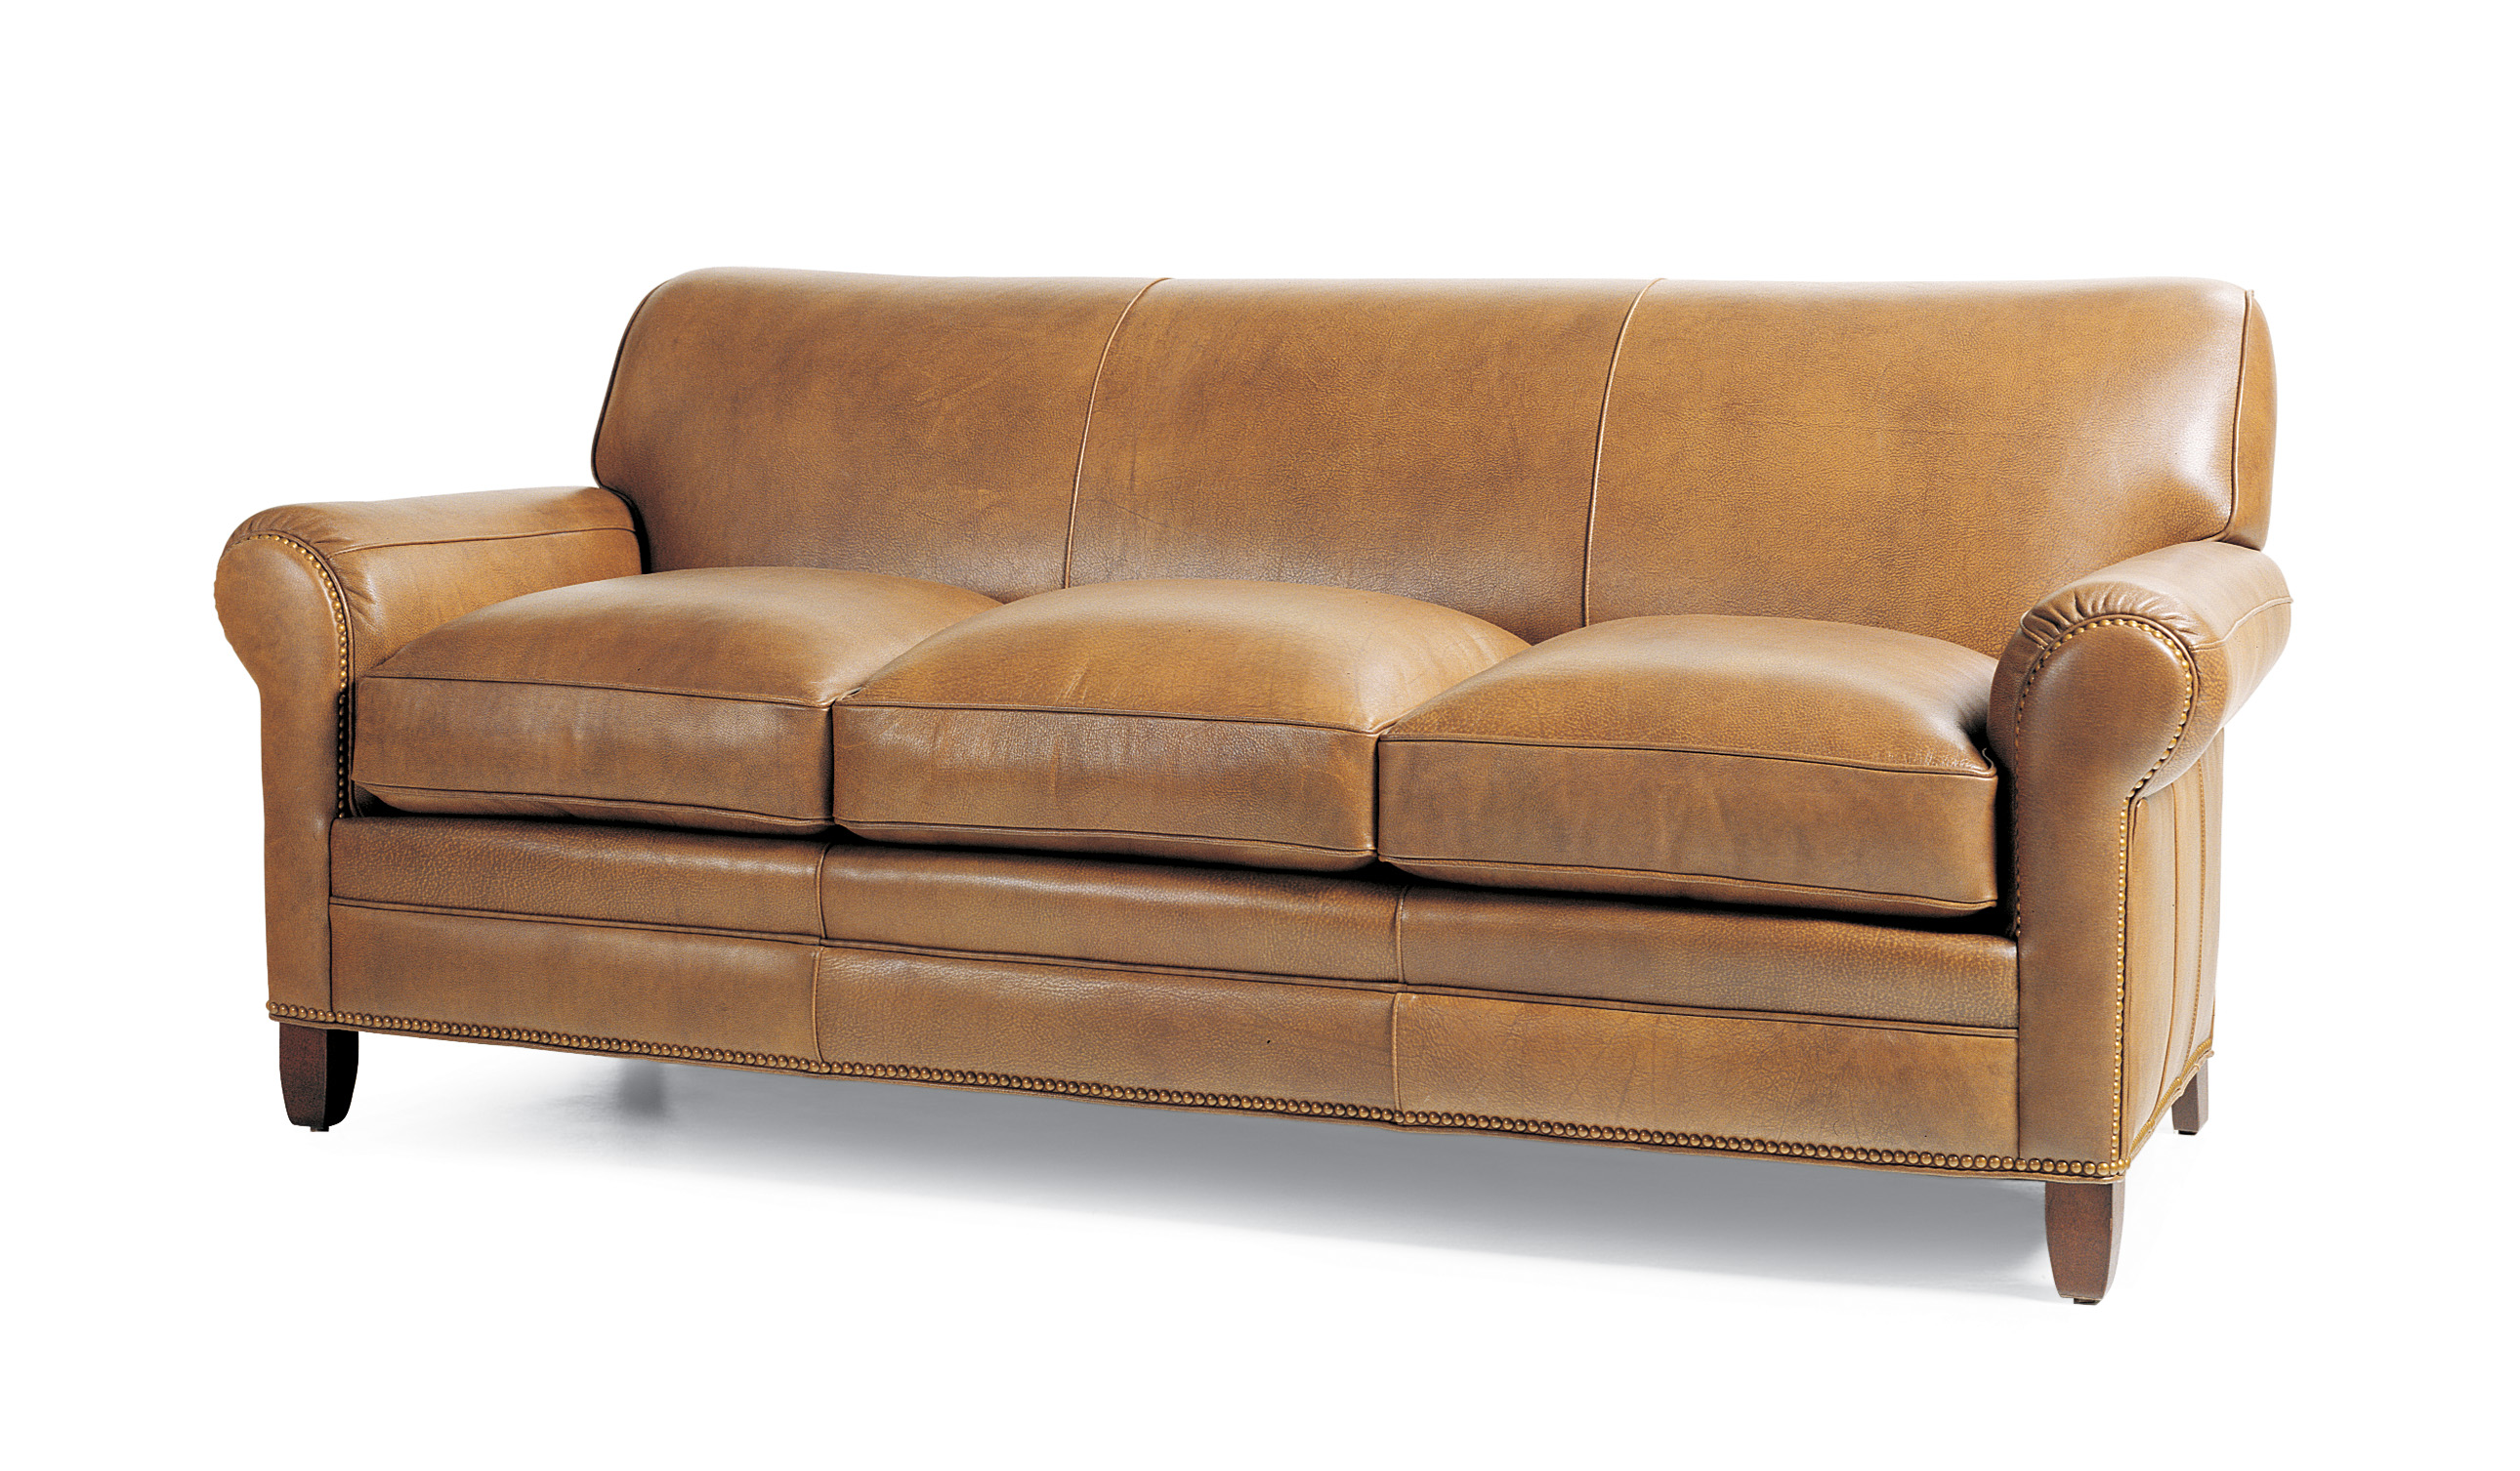 Meadows Sofa Image